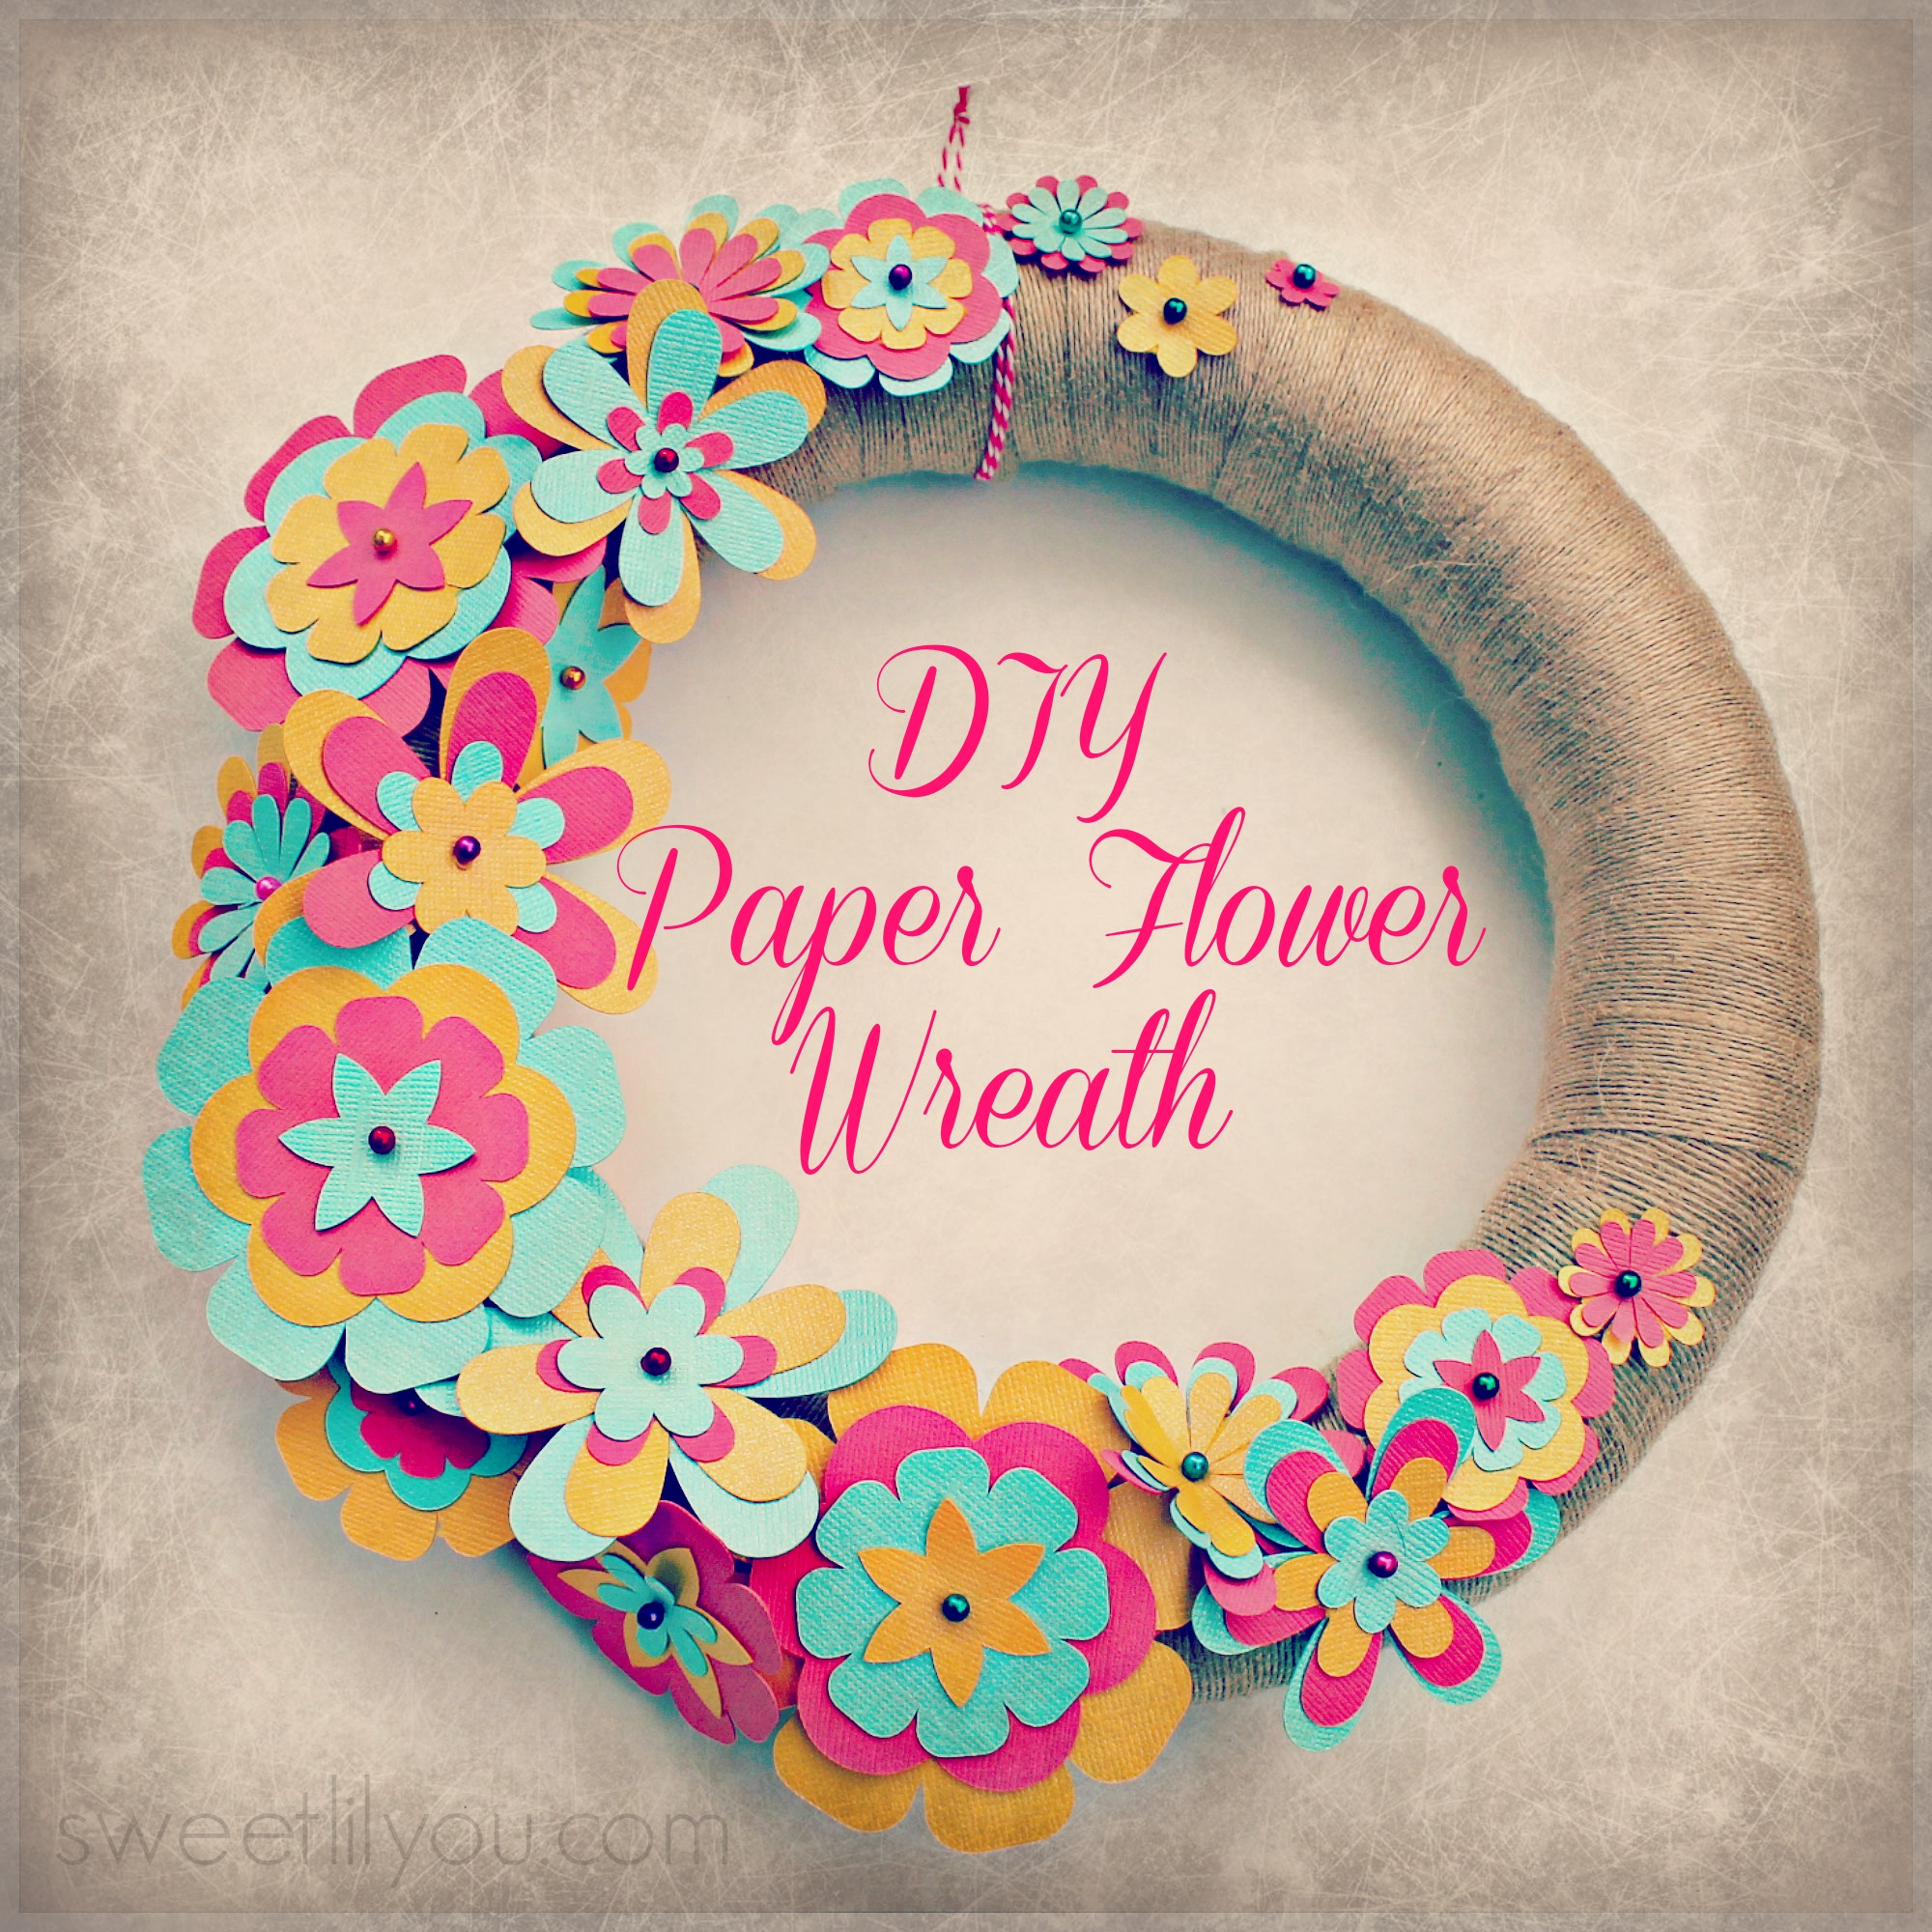 Easy diy paper flower wreath sweet lil you for Easy diy arts and crafts